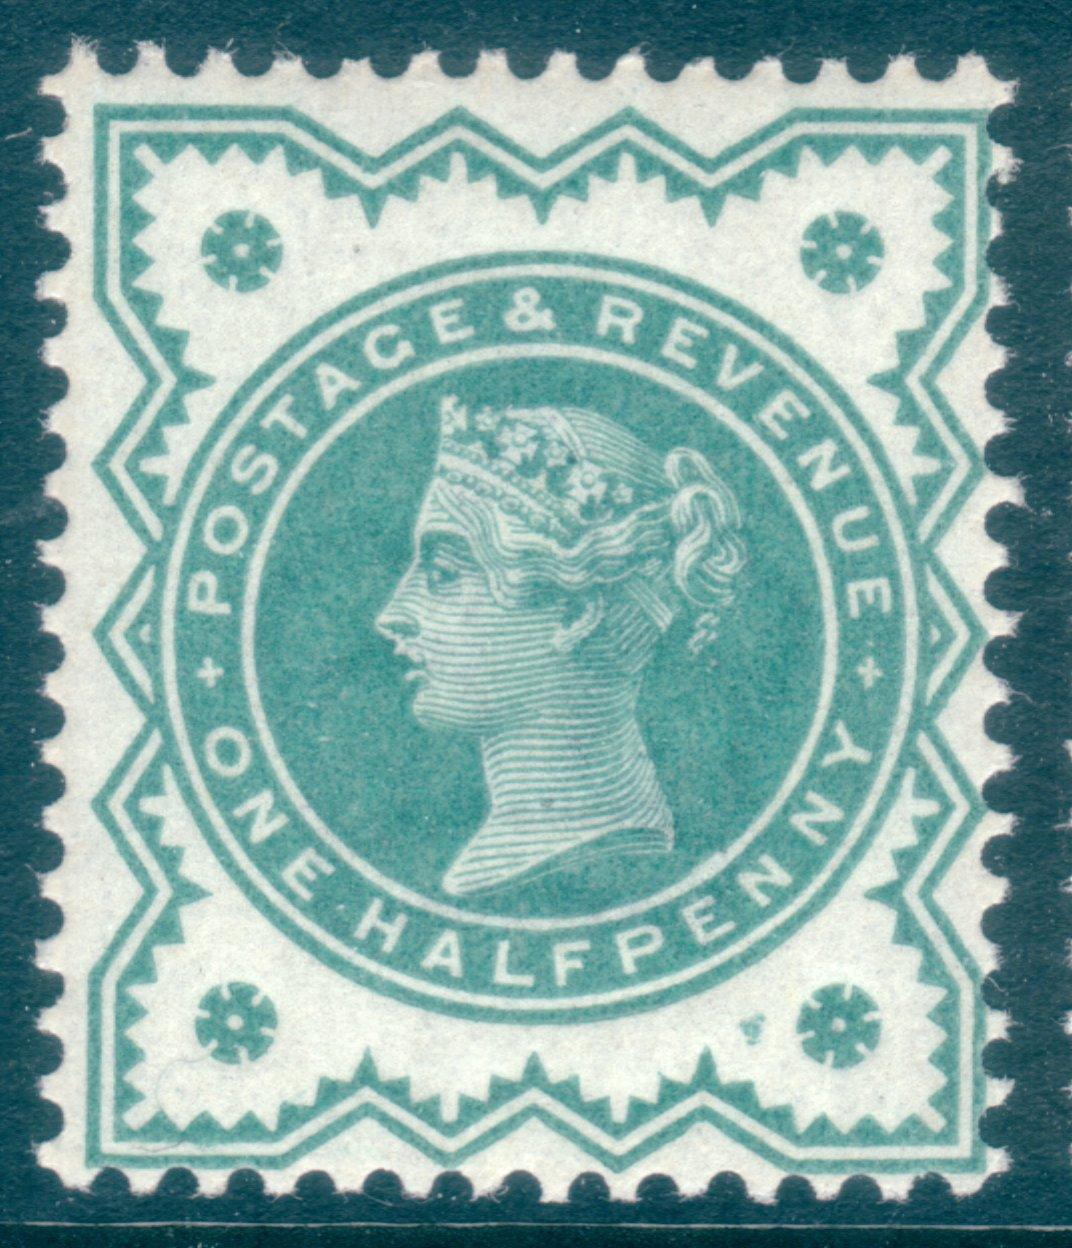 1900 ½d Blue-green UM Extra Ink & Inner Oval Cracked Plate Variety